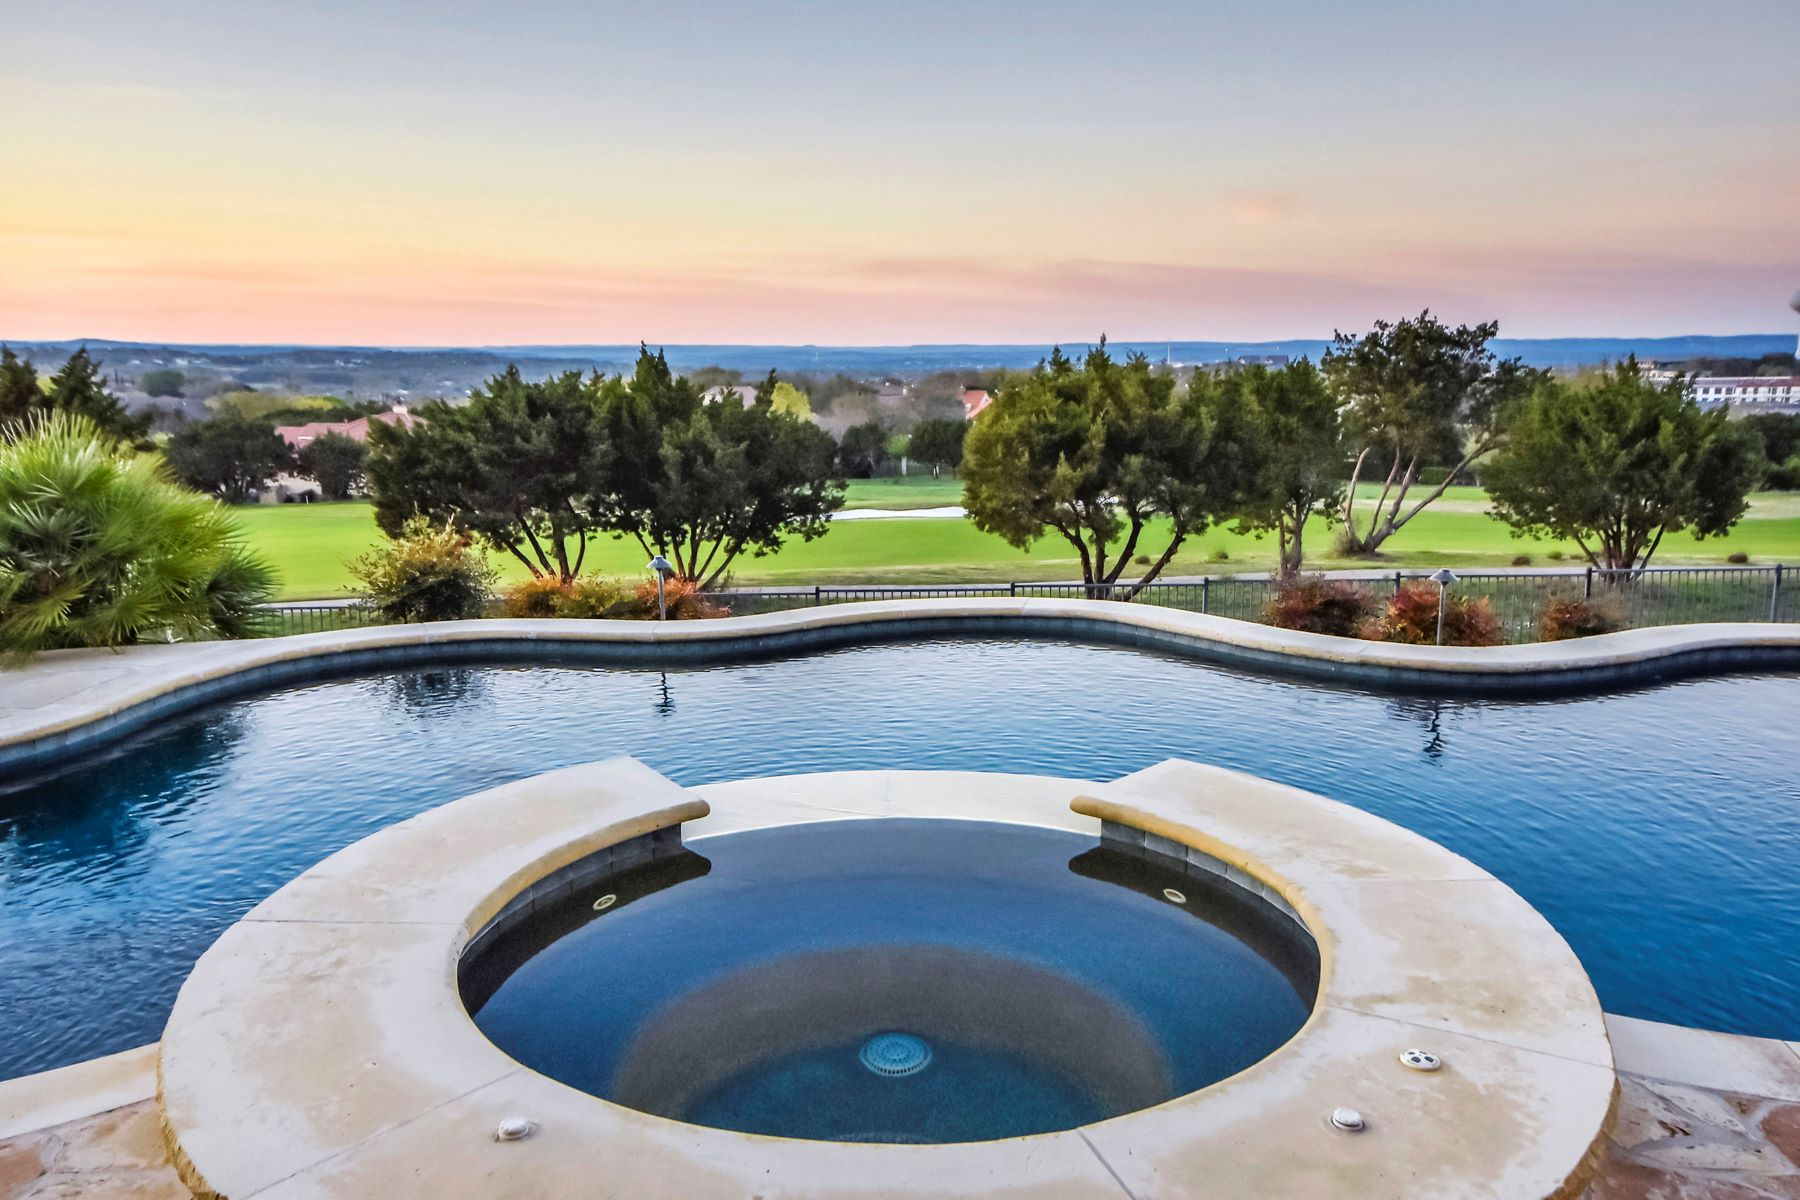 Single Family Home for Sale at An Entertainer's Dream with Stunning Sunset Views 205 Neville Wood Ct Austin, Texas, 78738 United States